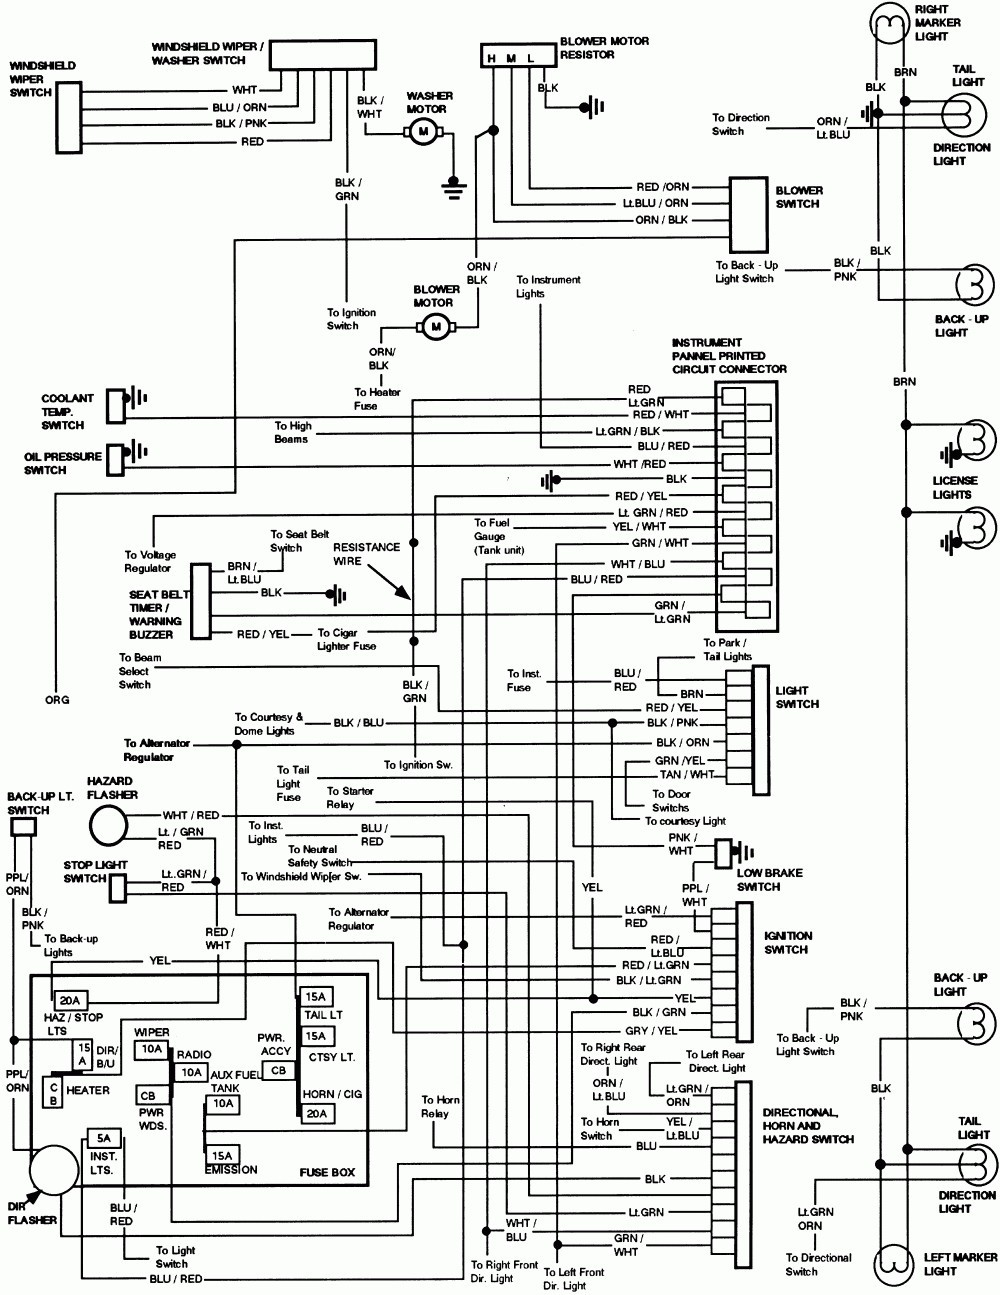 1990 ford f150 starter solenoid wiring diagram awesome 86 ford engine diagram wiring diagrams schematics of 1990 ford f150 starter solenoid wiring diagram